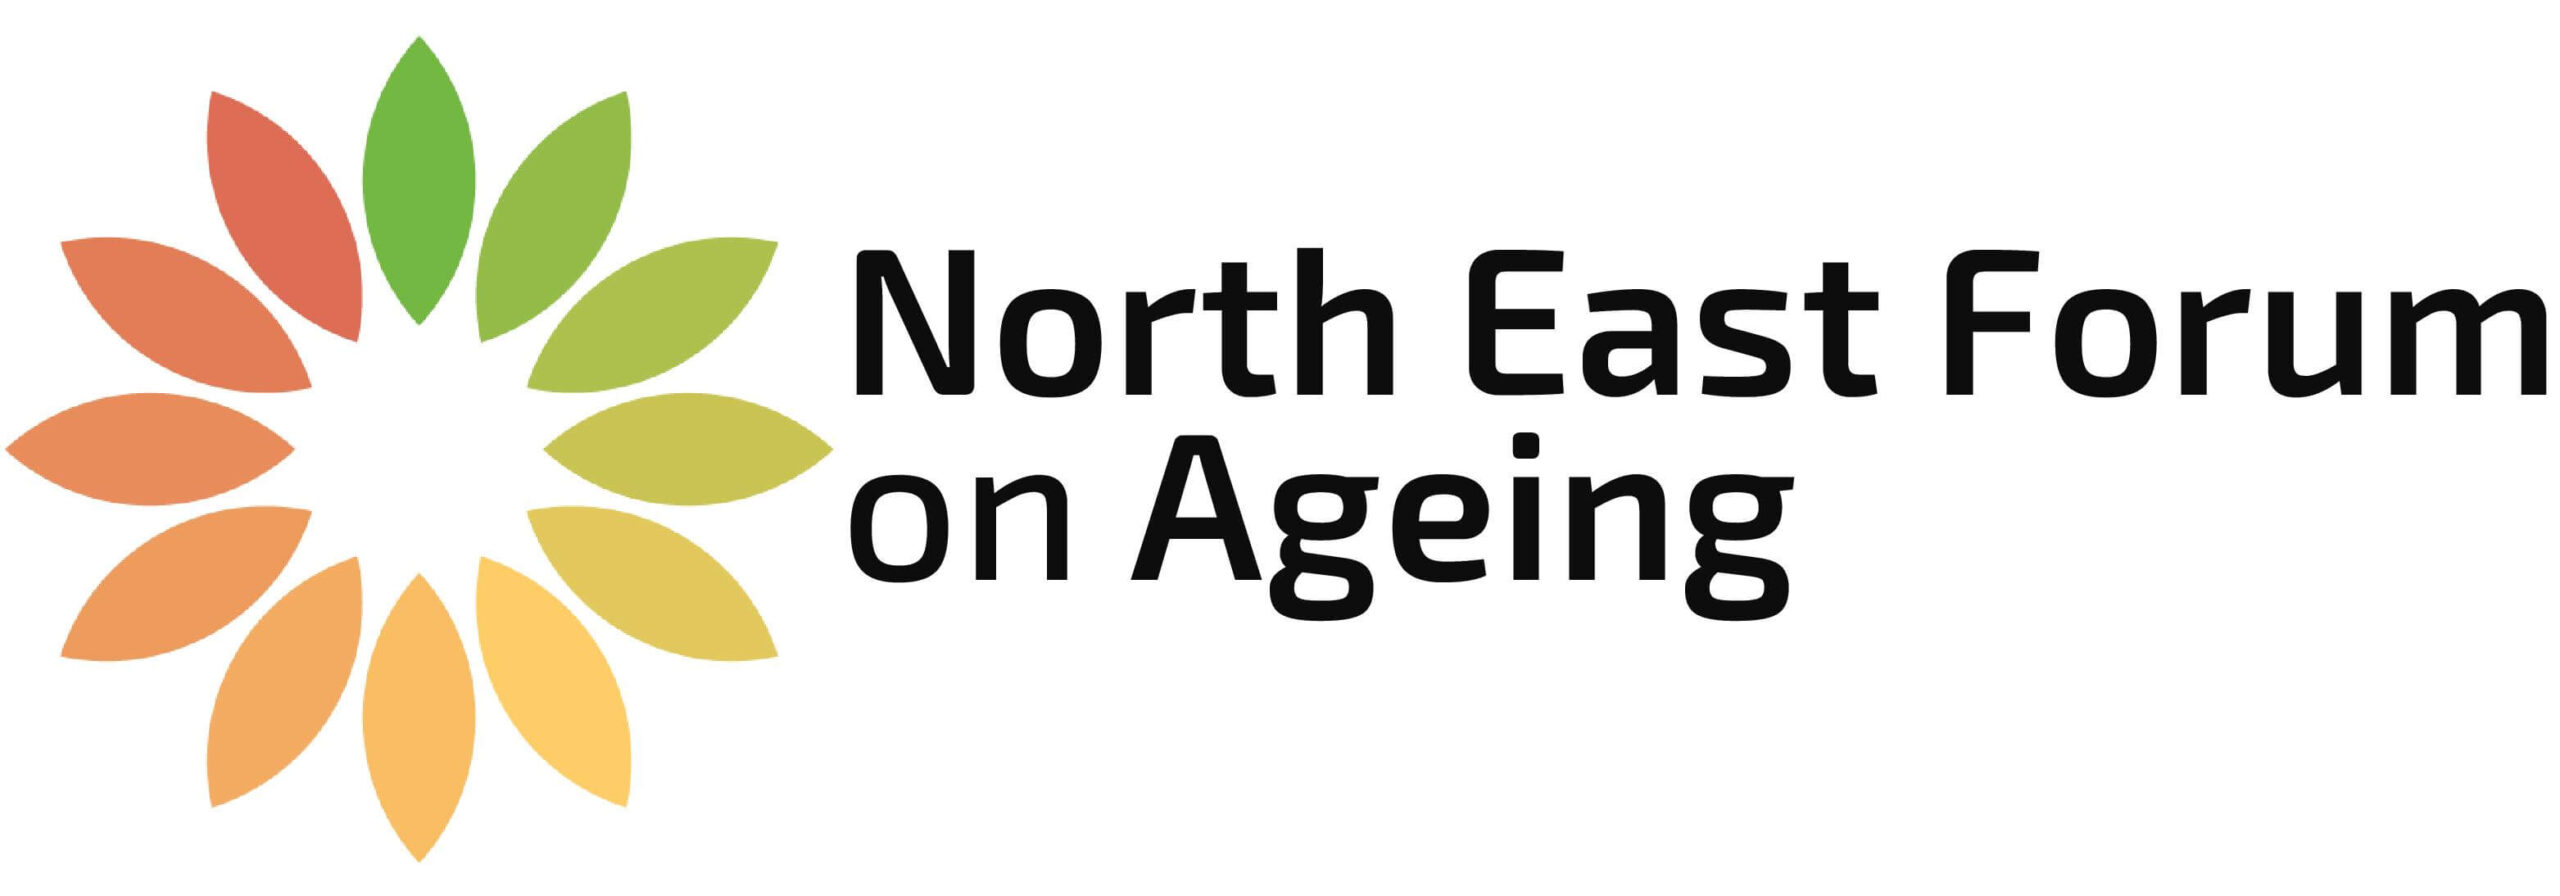 North East Forum on Ageing